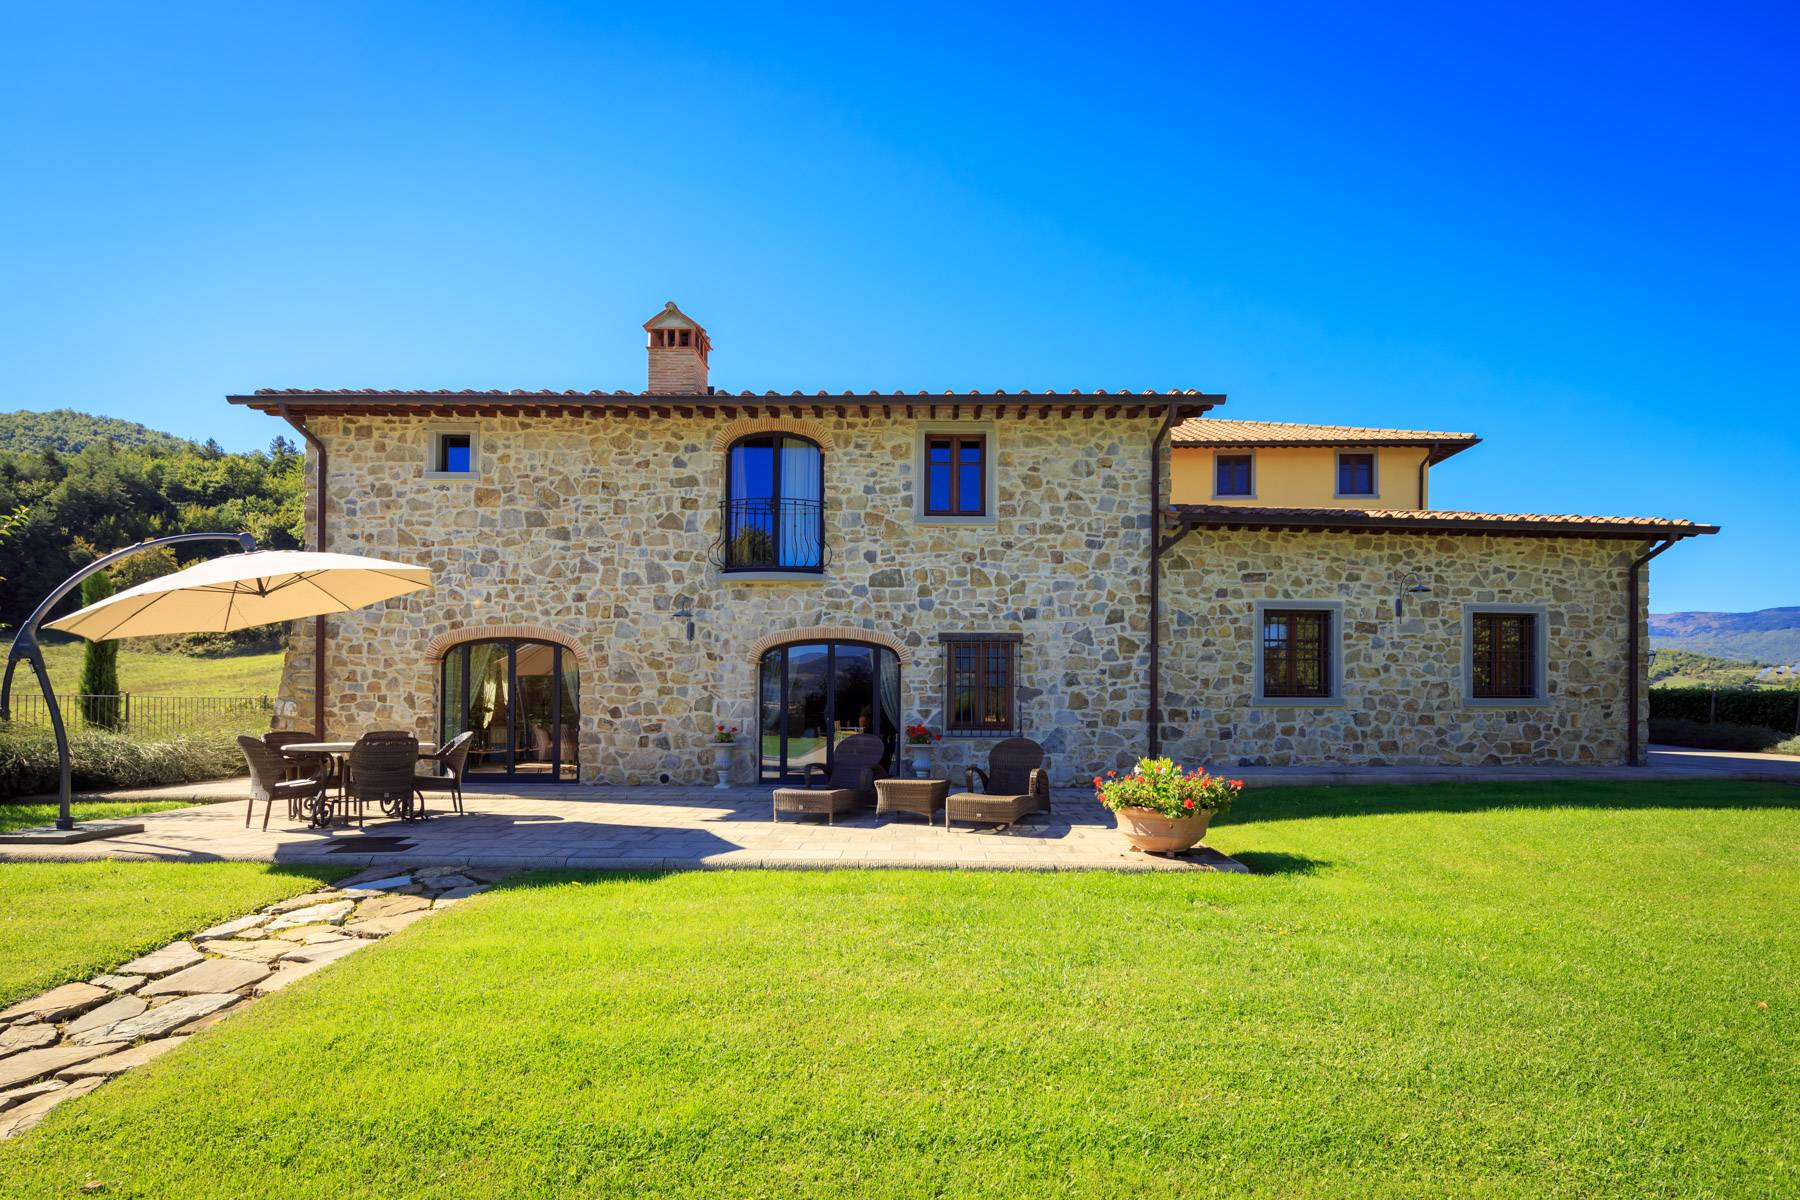 Marvelous estate with views over the Casentino valley - 3